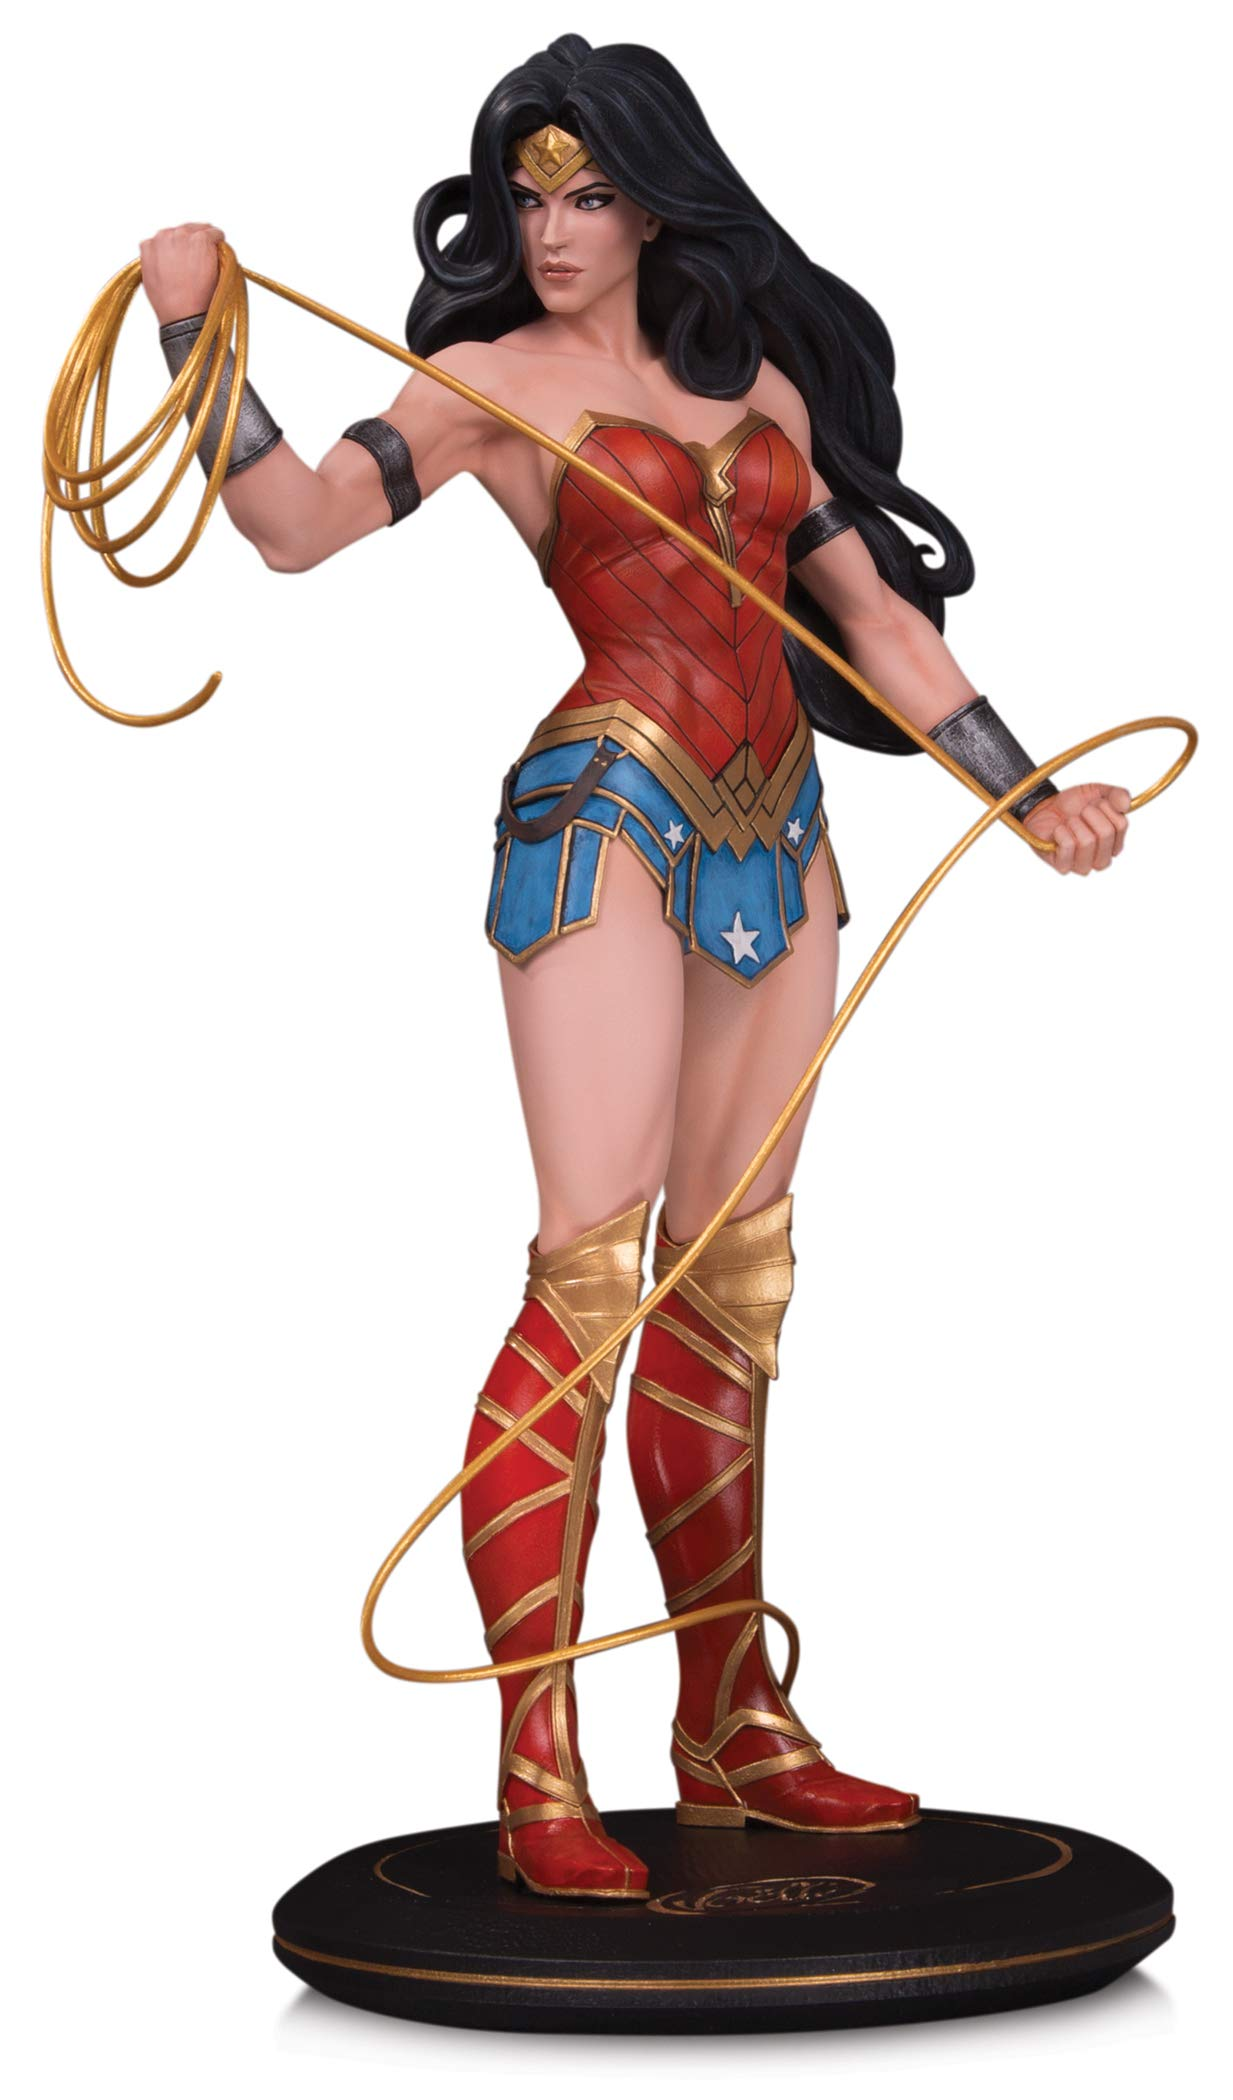 DC Cover Girls: Wonder Woman by Joelle Jones Statue by DC Collectibles